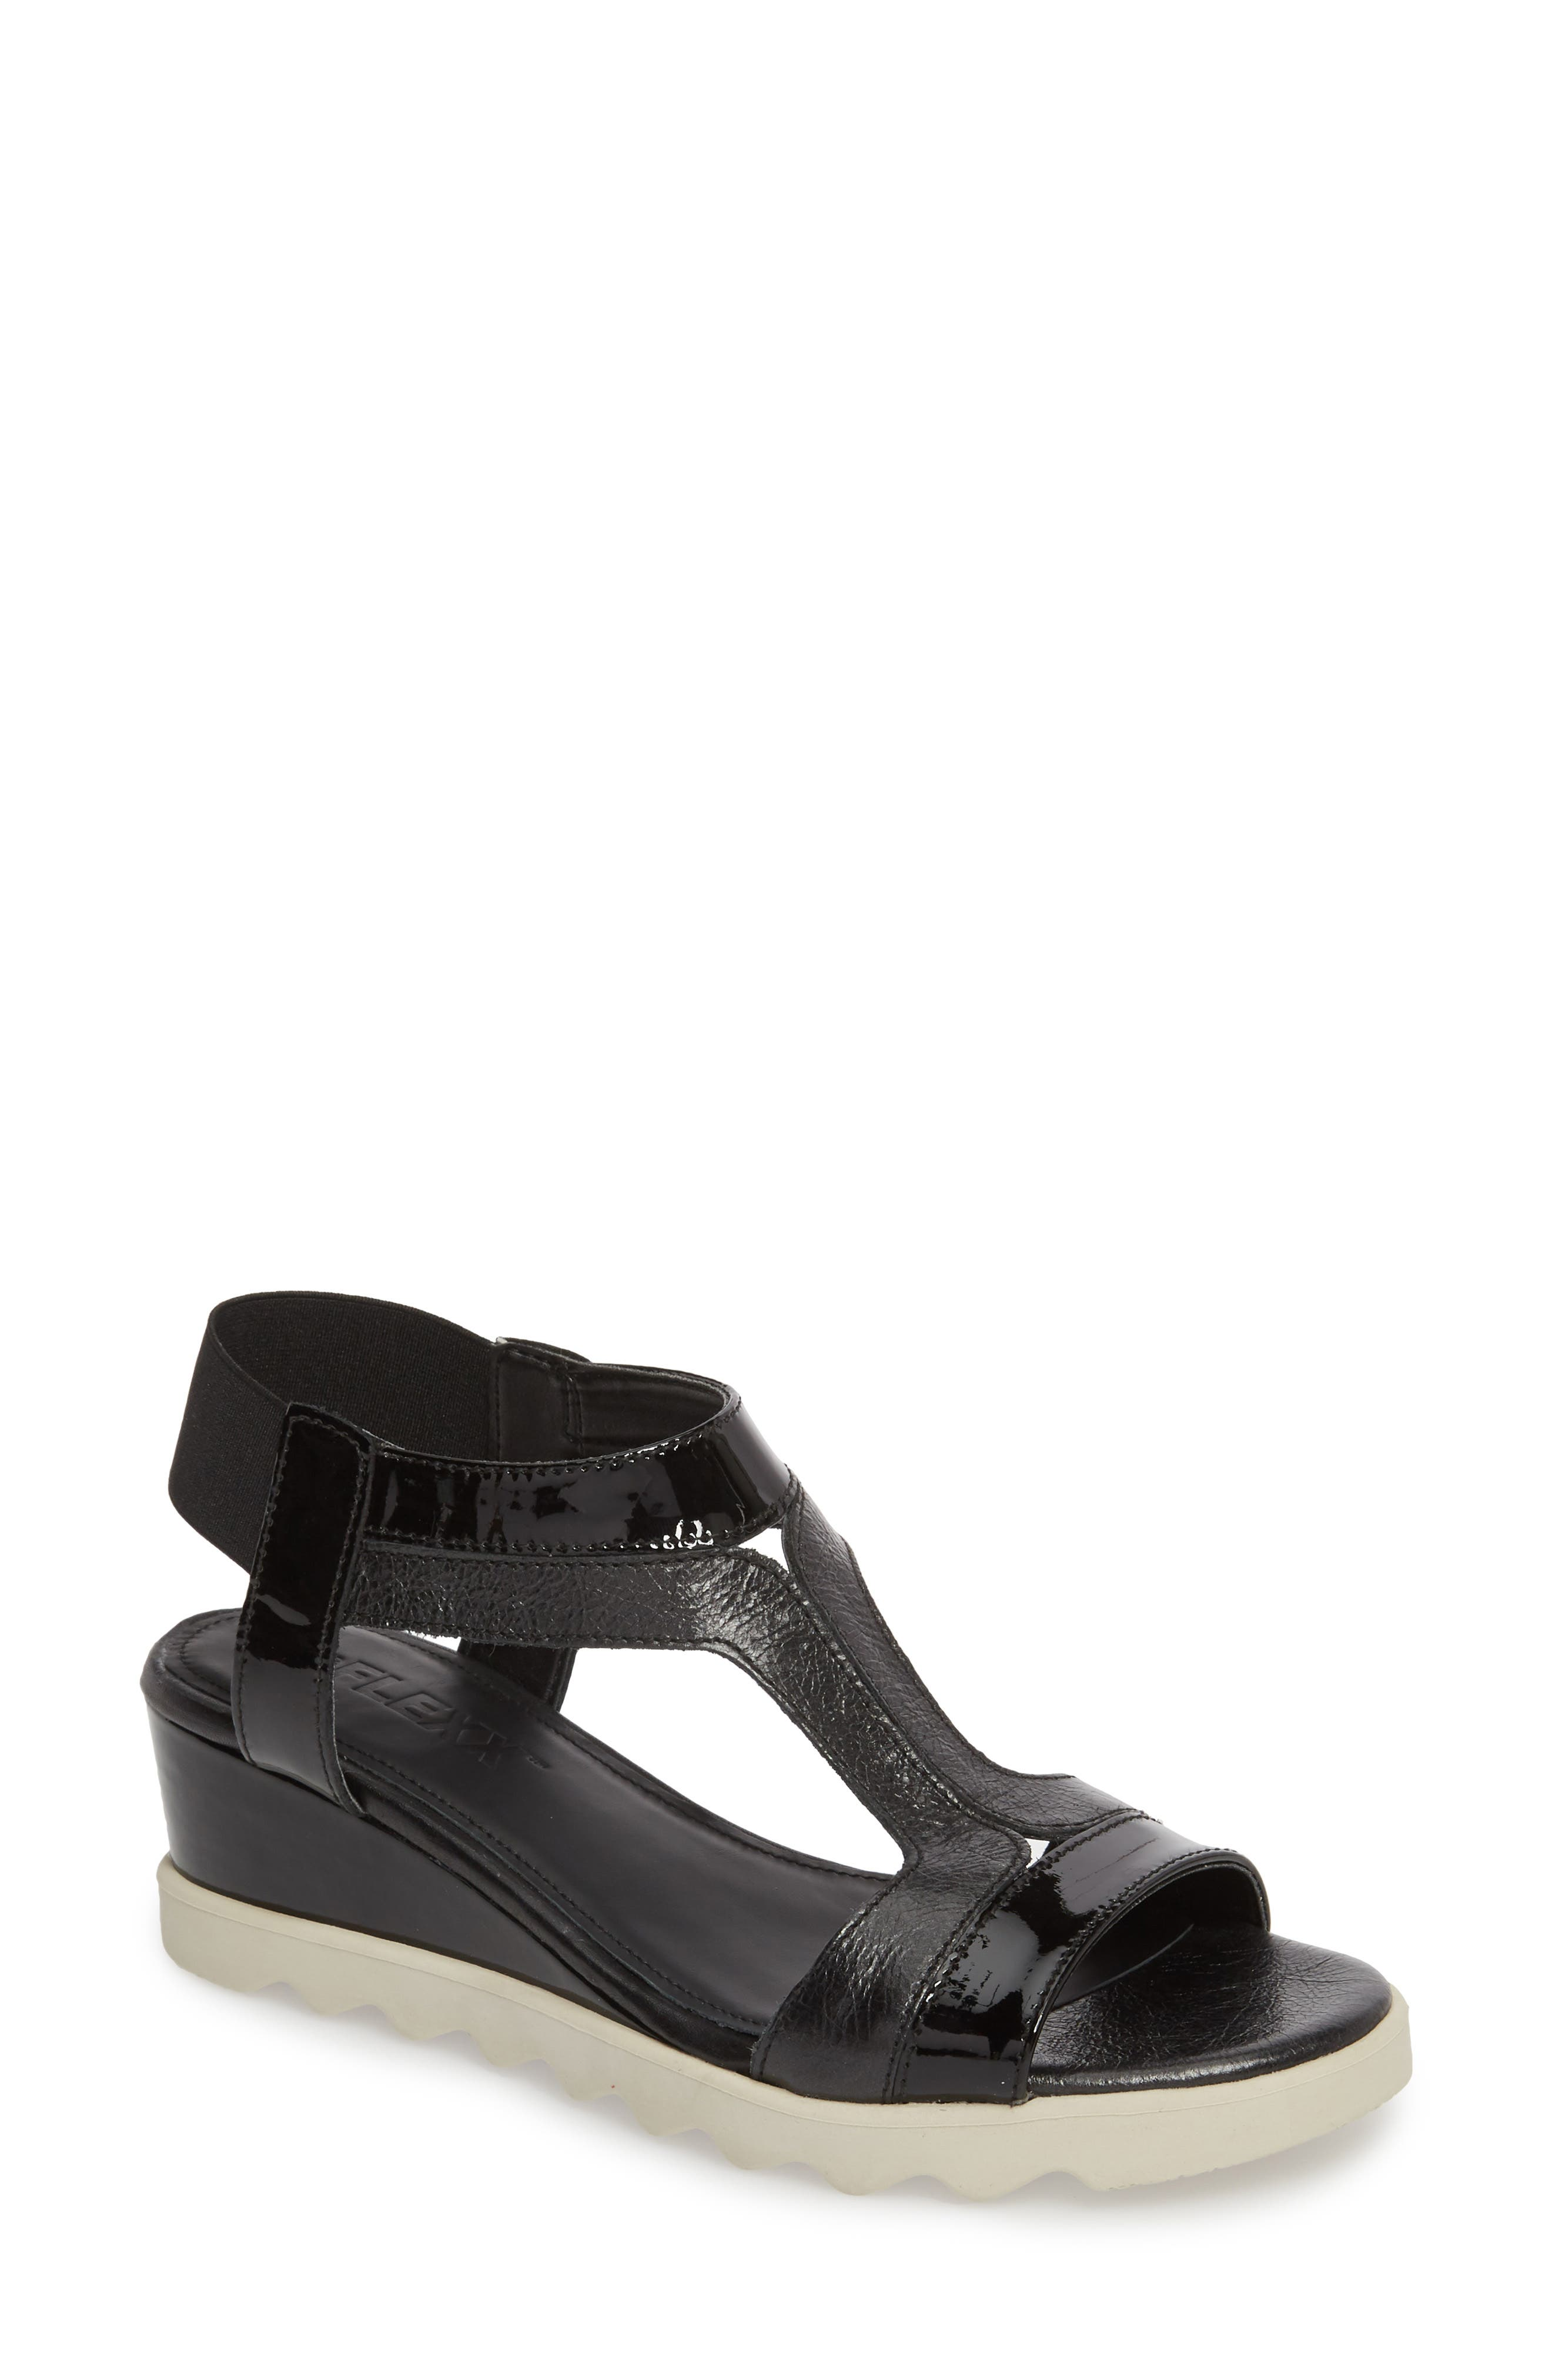 Give A Hoot Wedge Sandal,                         Main,                         color, 009